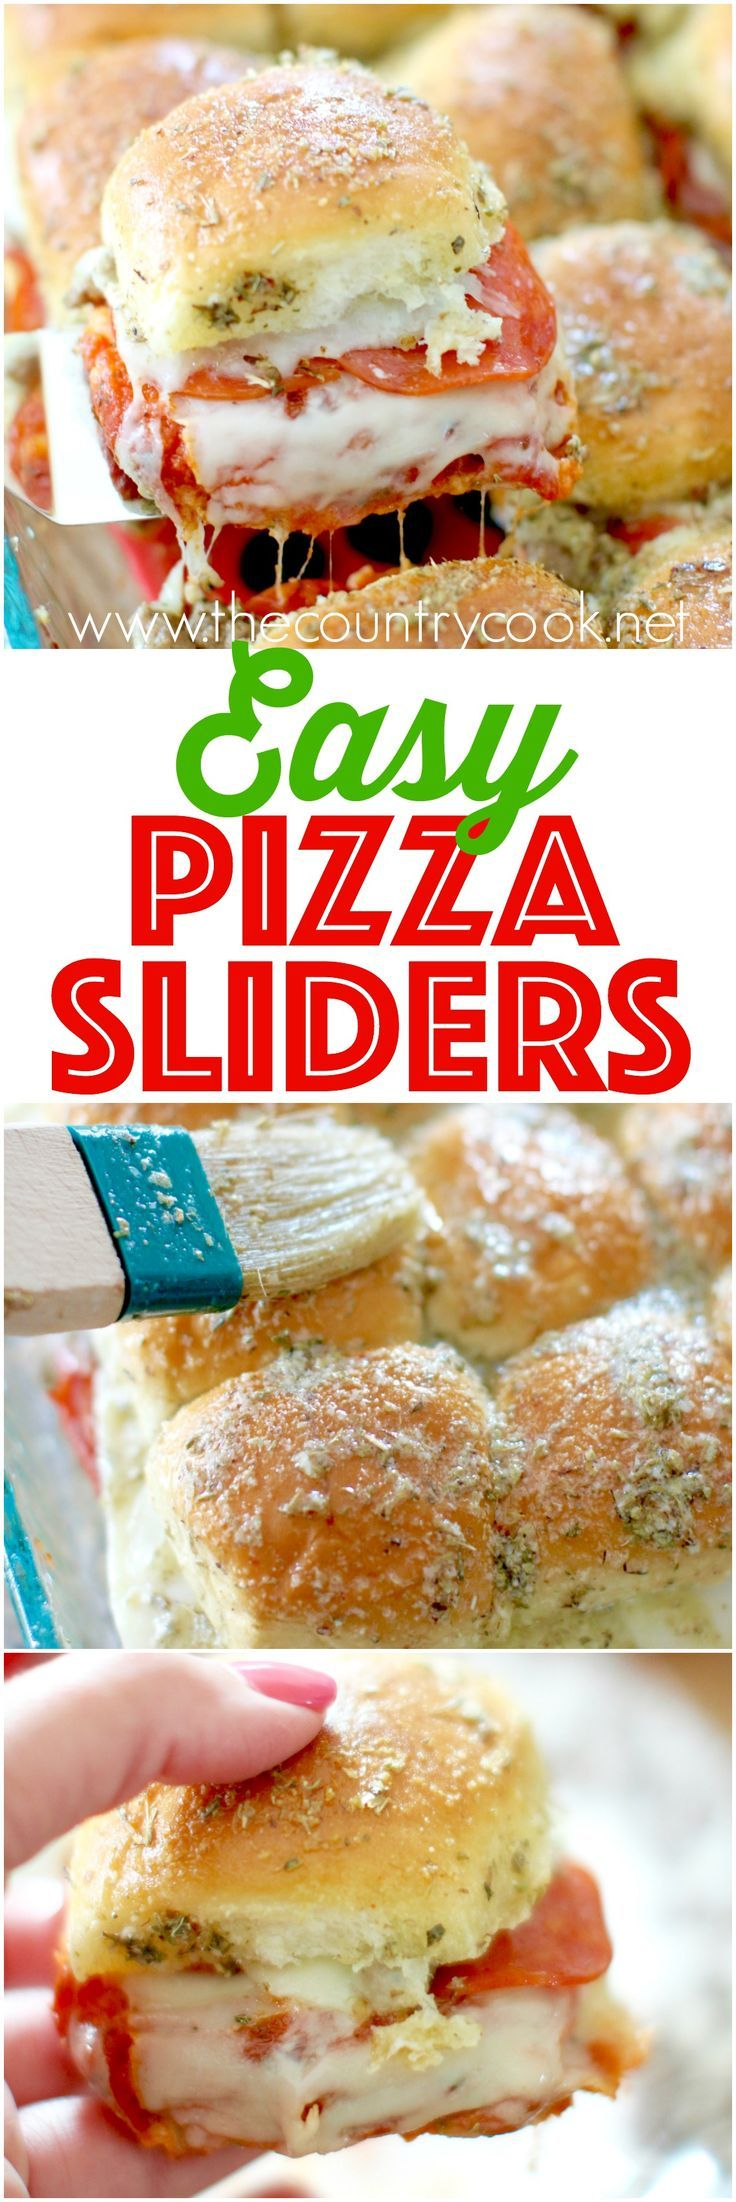 Pizza Pull-Apart Sliders recipe from The Country Cook. Cheesy, meaty filling and the most amazing herb butter topping. You can't eat just one! #food #foodie #recipe #recipes #pizza #sliders #easy